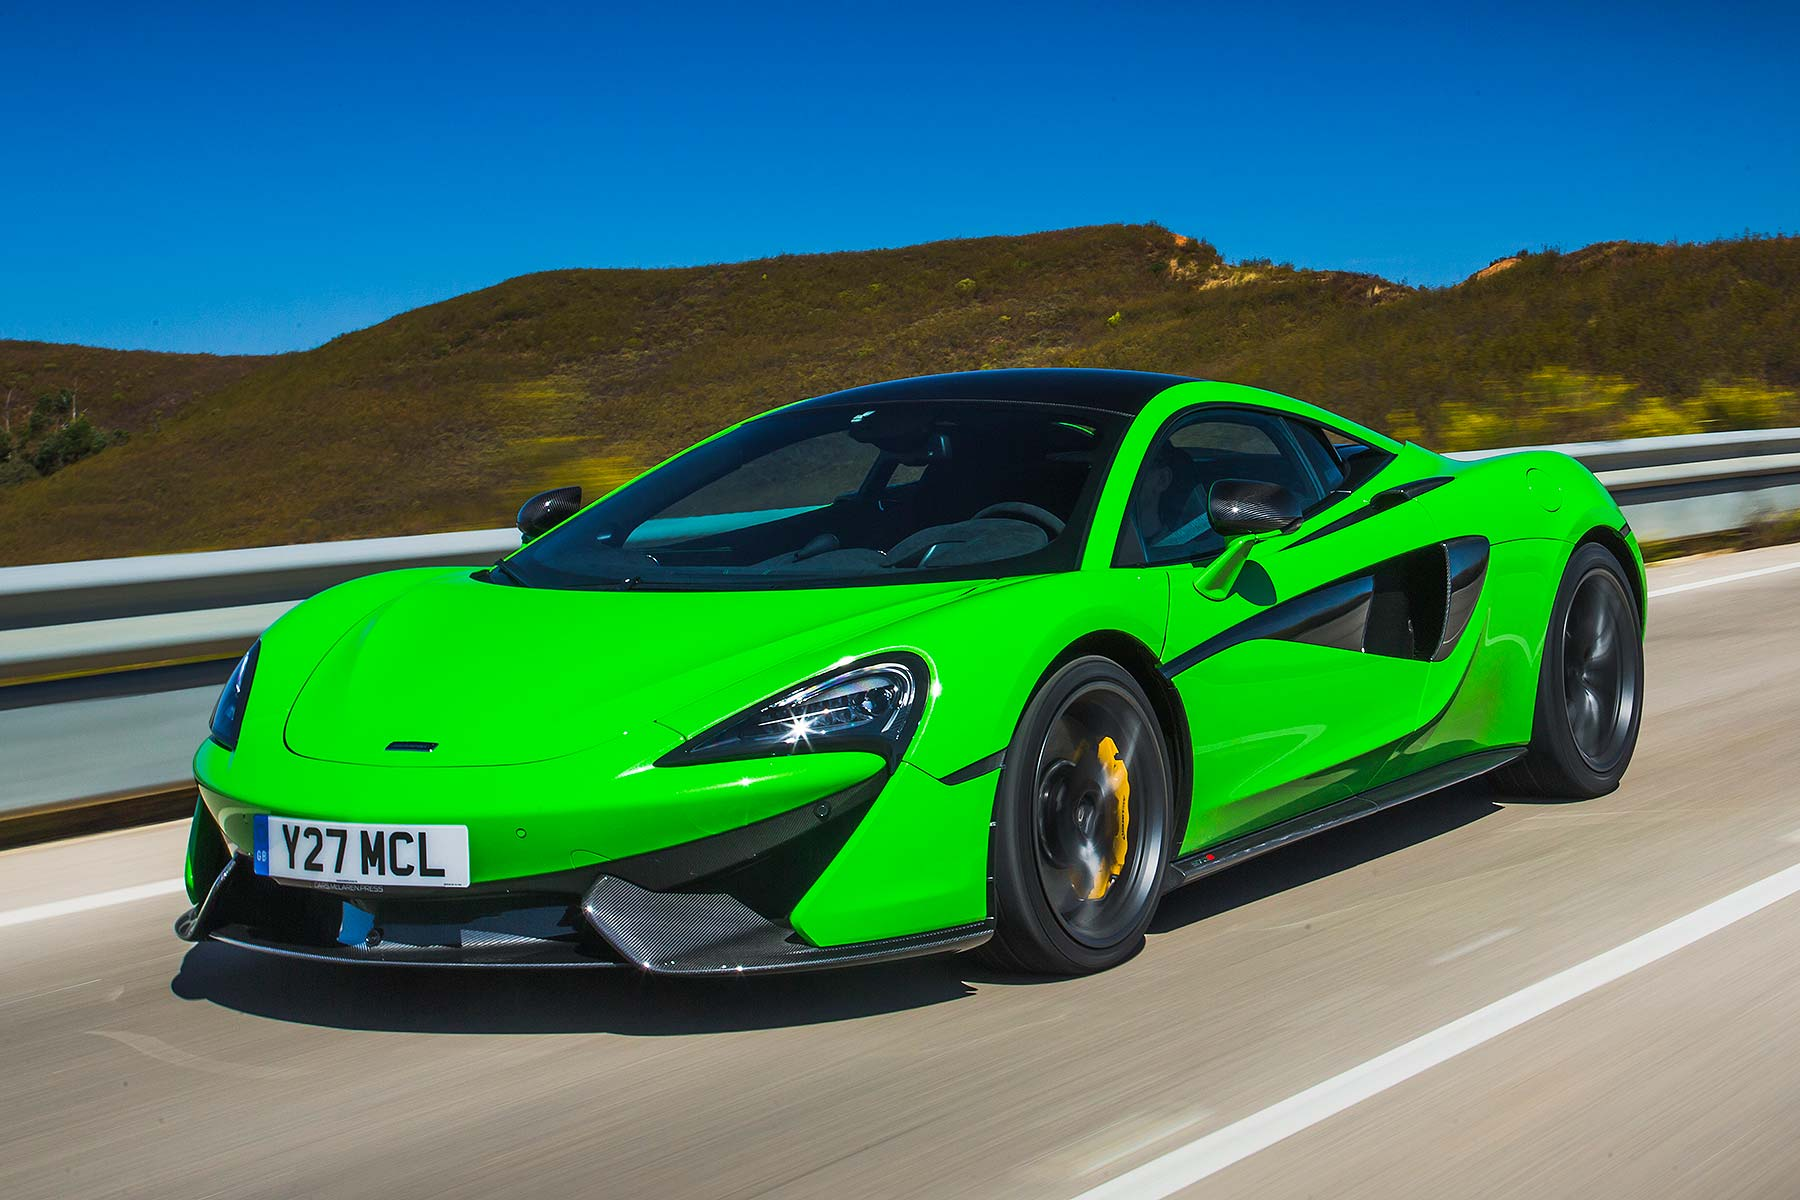 mclaren 570s review 2015 first drive motoring research